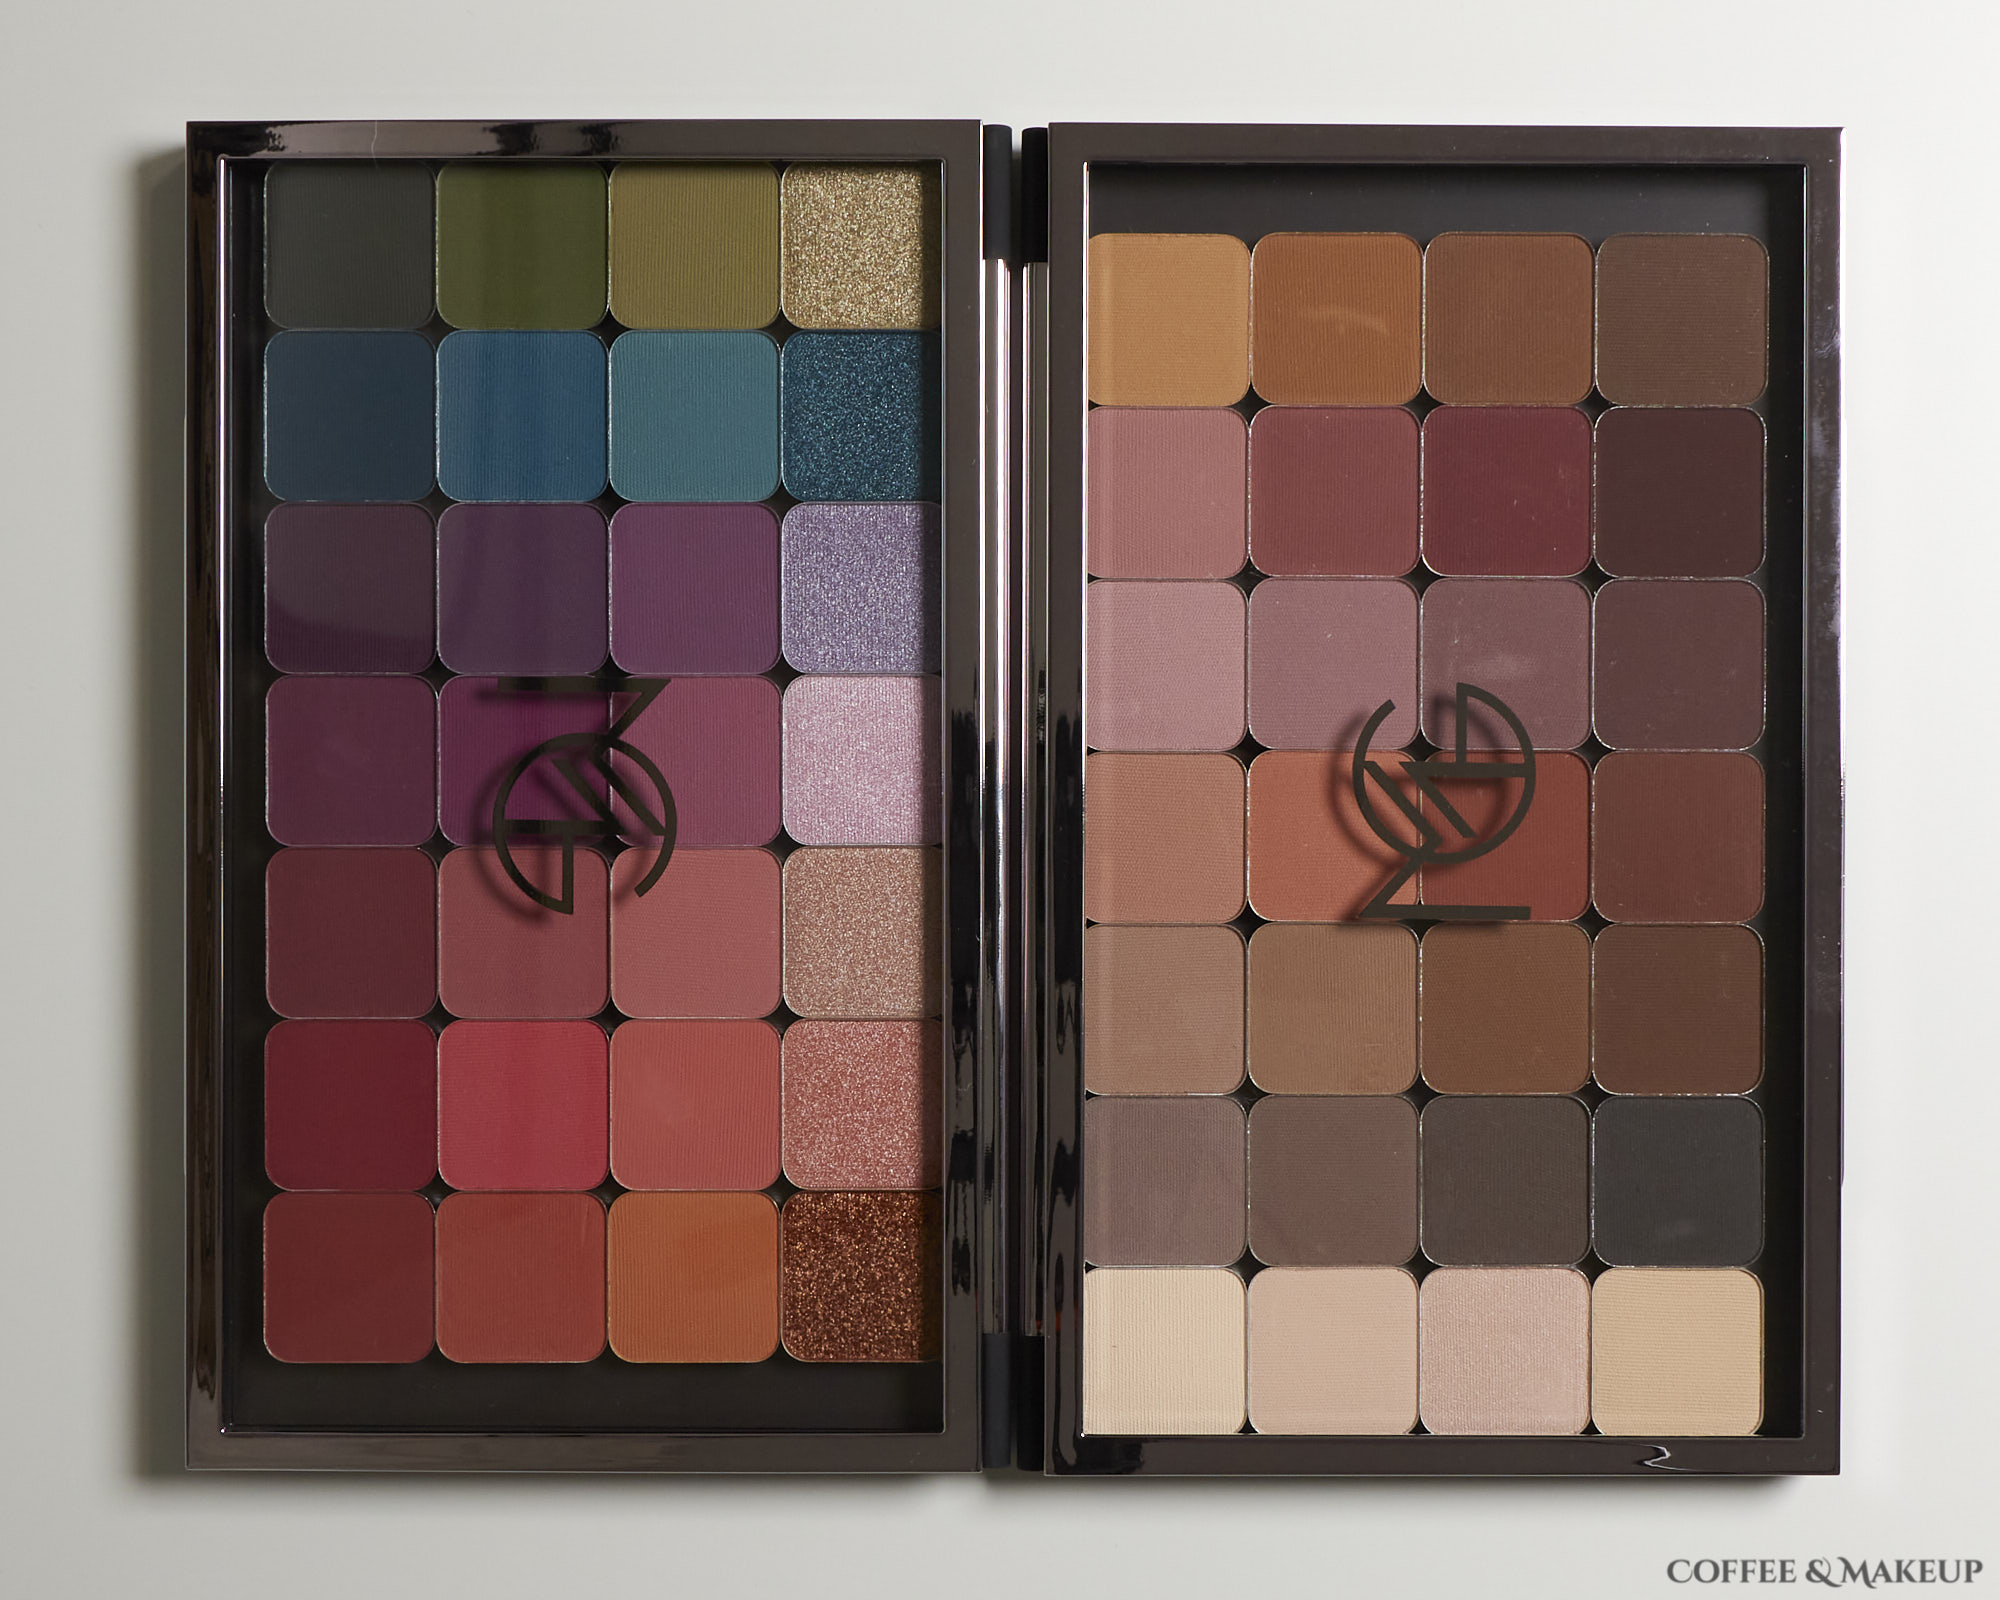 Makeup Geek Matrix Palettes | Makeup Geek Eyeshadows